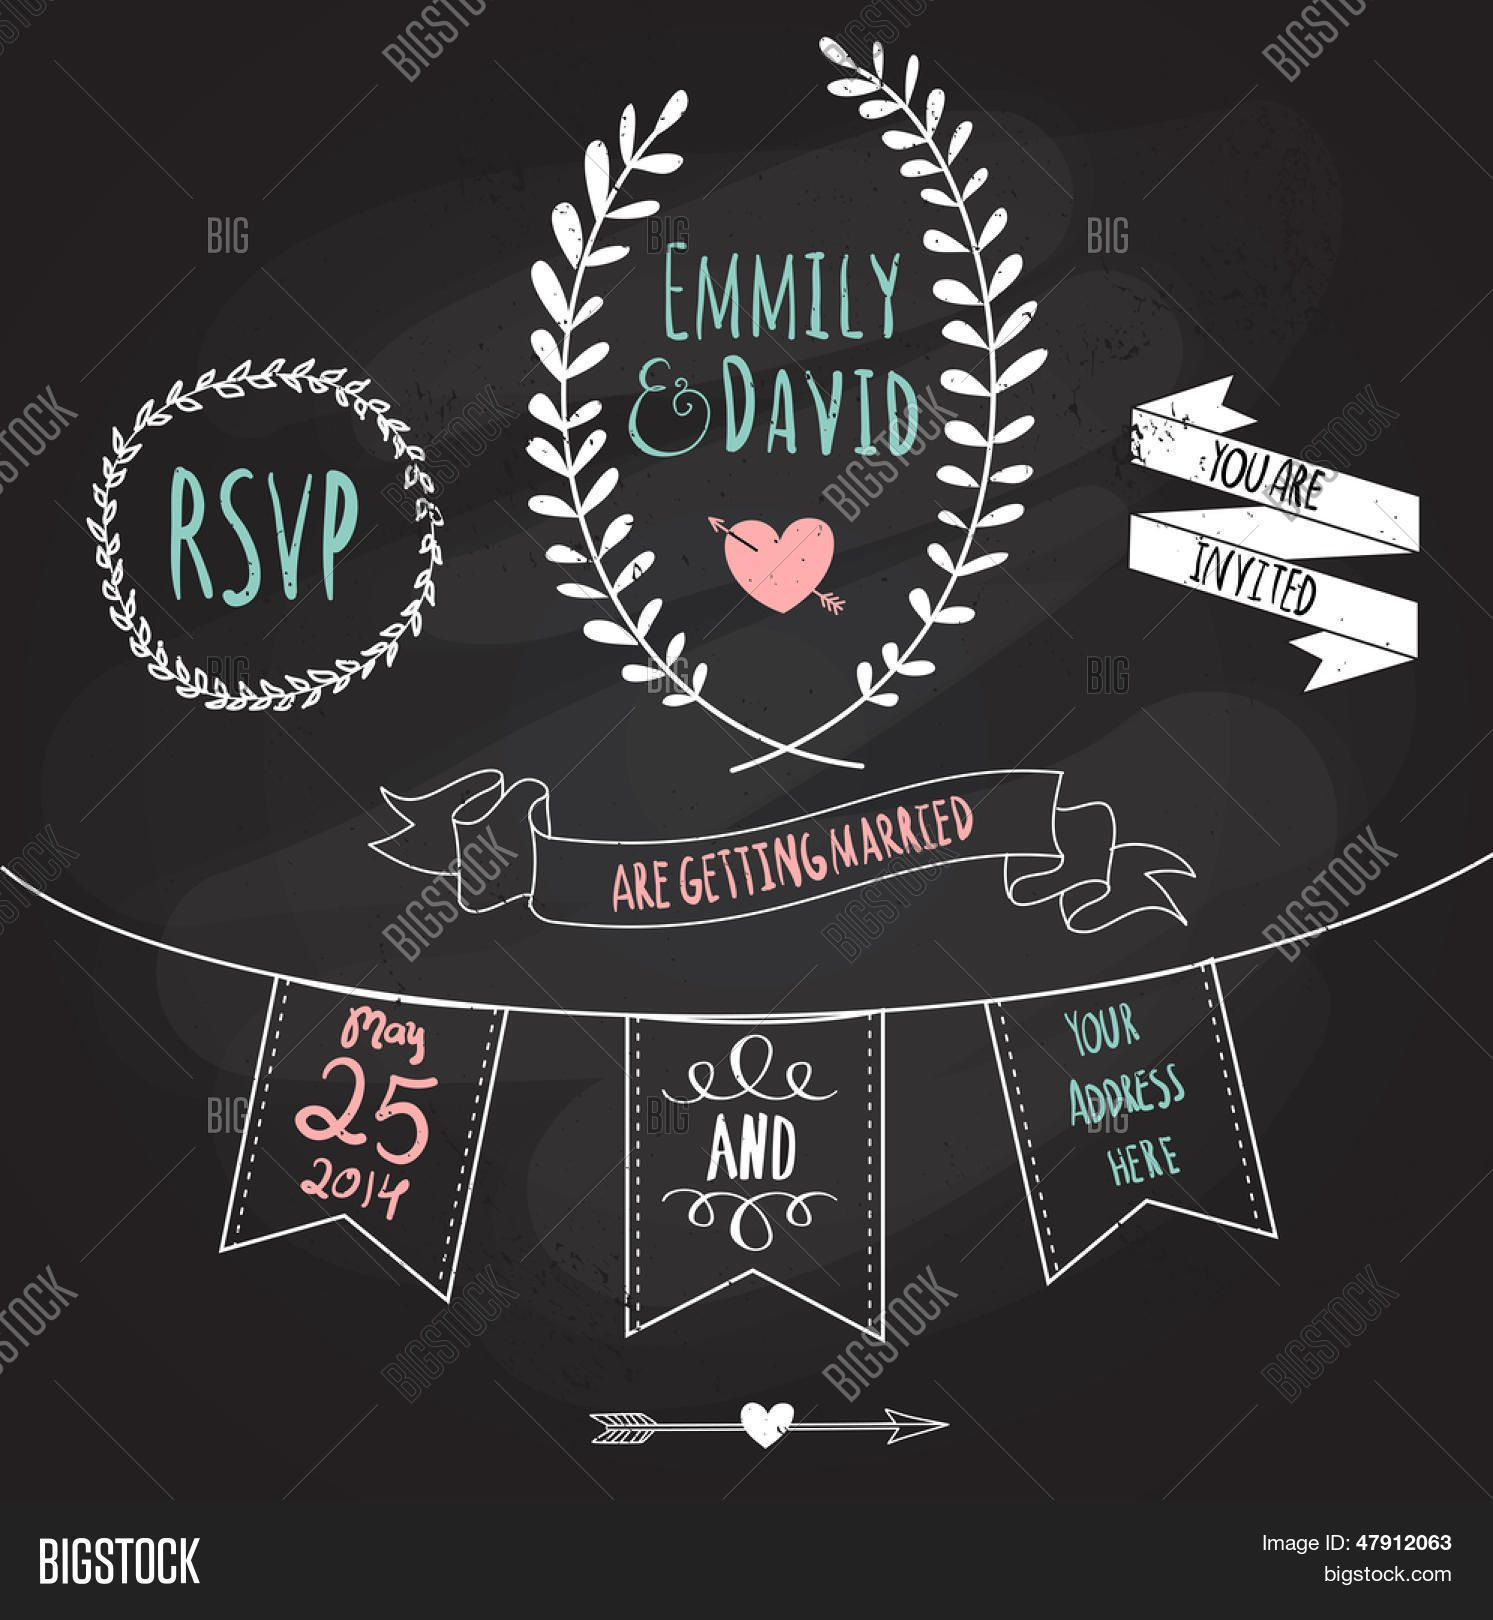 003 Simple Chalkboard Invitation Template Free Sample  Download BirthdayFull